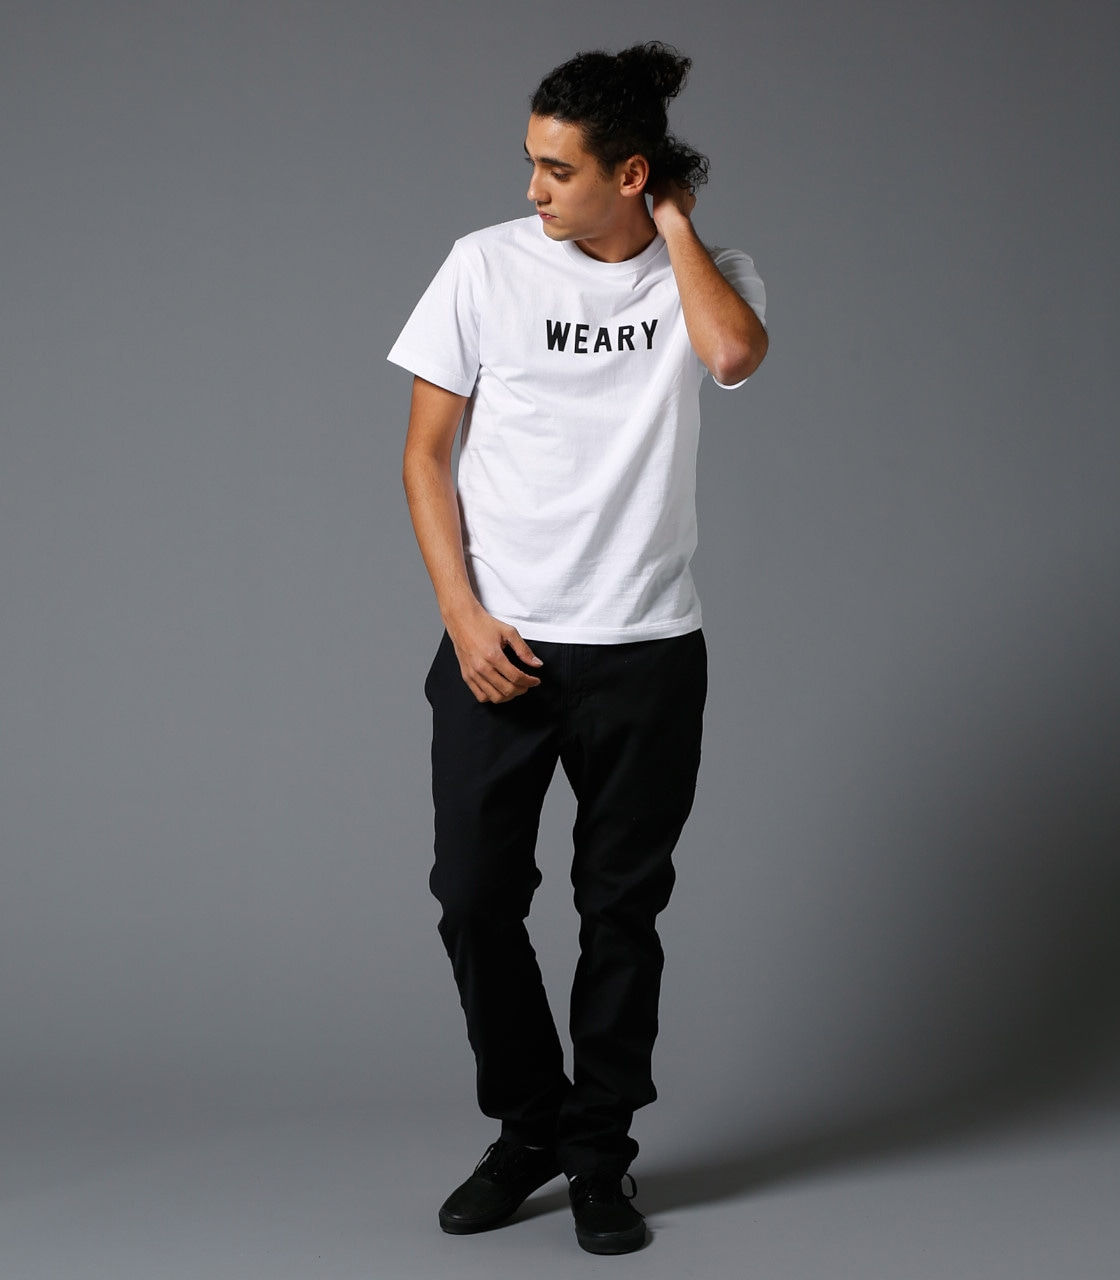 【AZUL BY MOUSSY】WEARY 半袖T 詳細画像 WHT 4